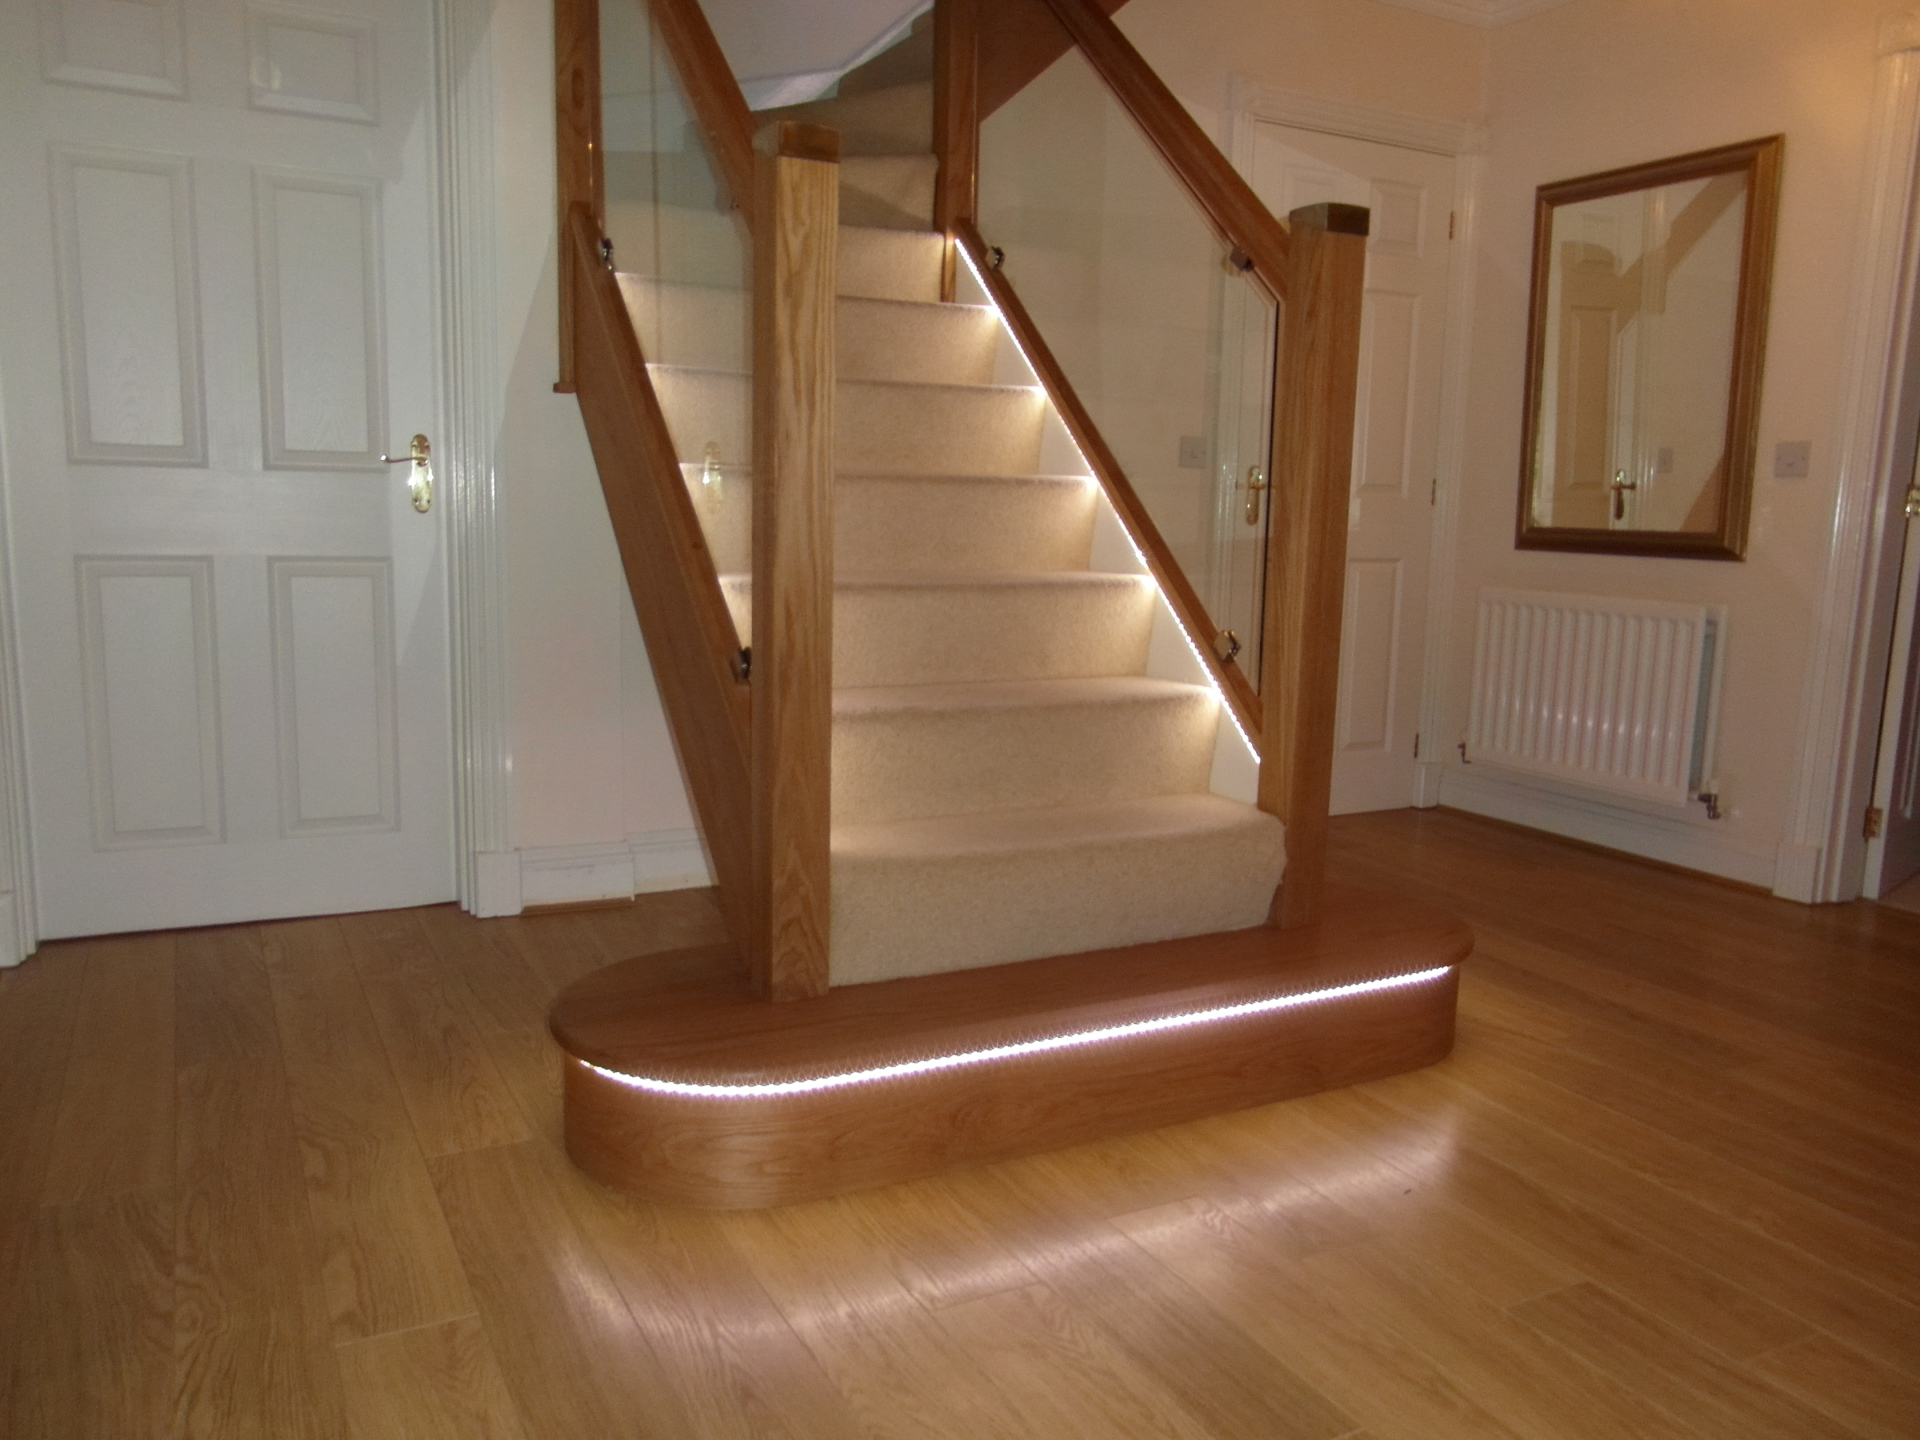 Stair Design & Renovation